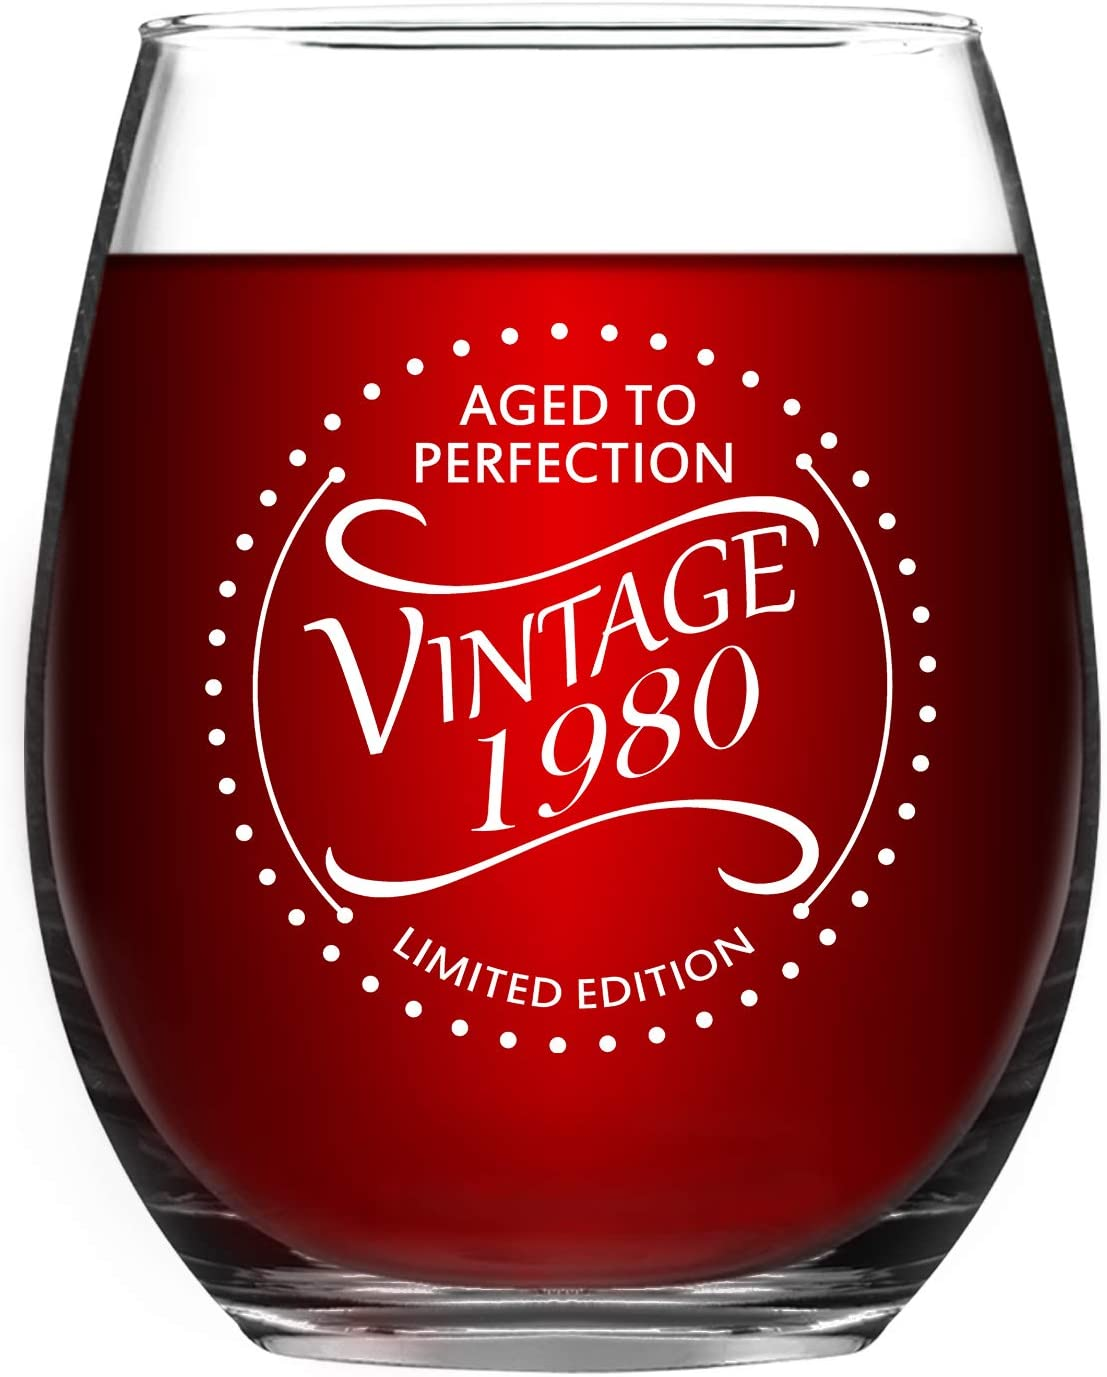 1980 40th Birthday Gifts Vintage 40 Year Old Presents Stemless Wine Glass for Men Women, 15 Oz Funny Anniversary Gift Idea Wine Glass for Her Him Husband Wife Mom Dad